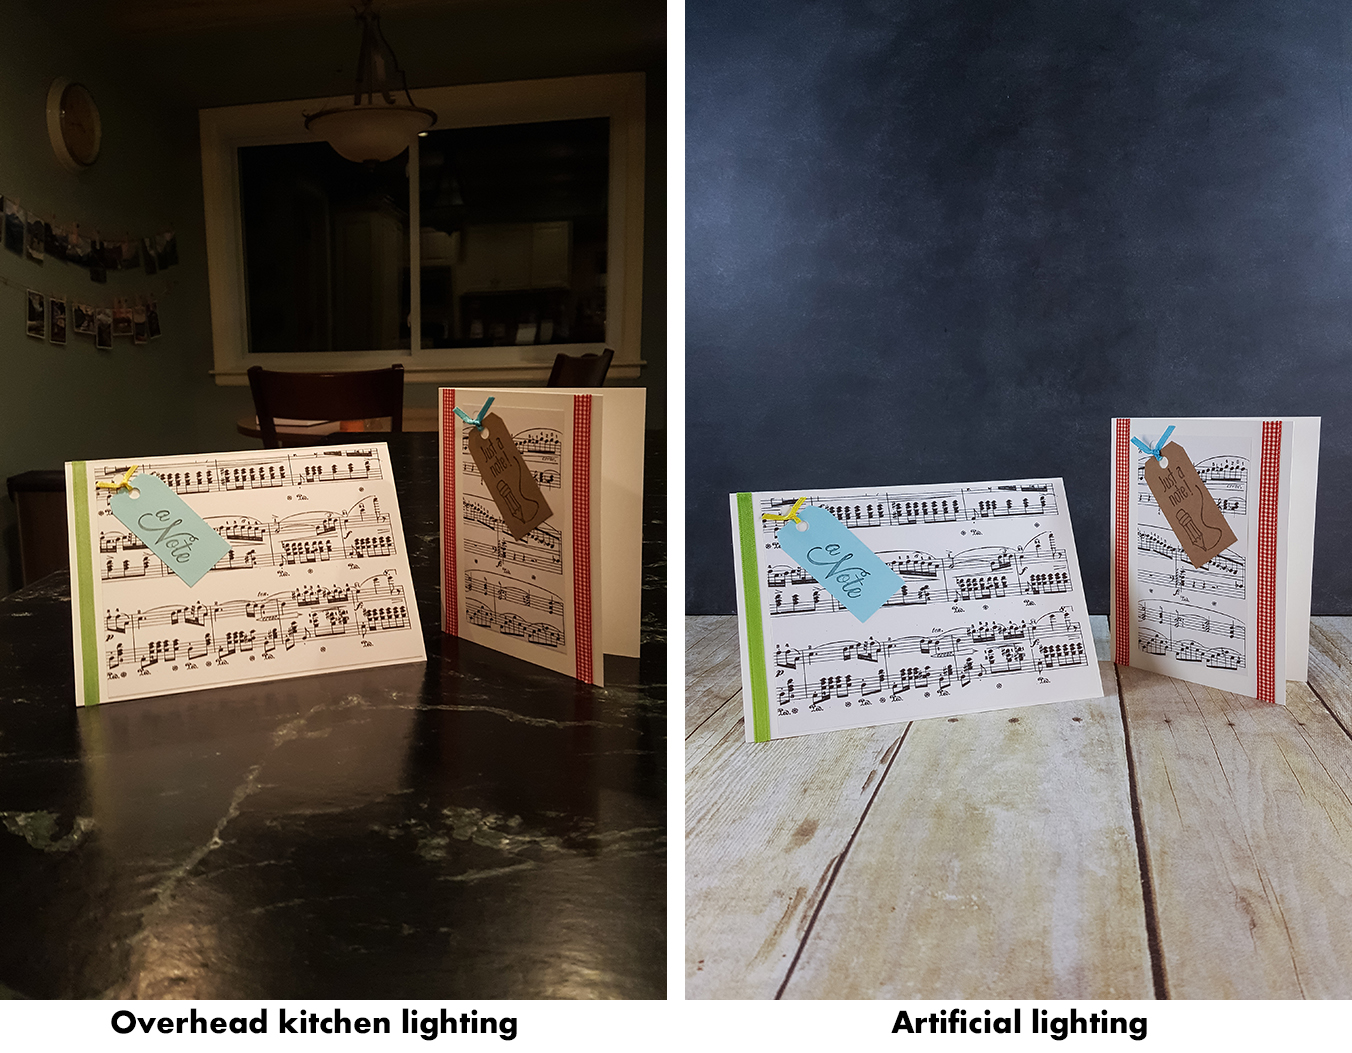 How to Take Better Photos for Your Blog With Your Phone - Overhead kitchen lighting vs. artificial lighting. | http://www.roseclearfield.com